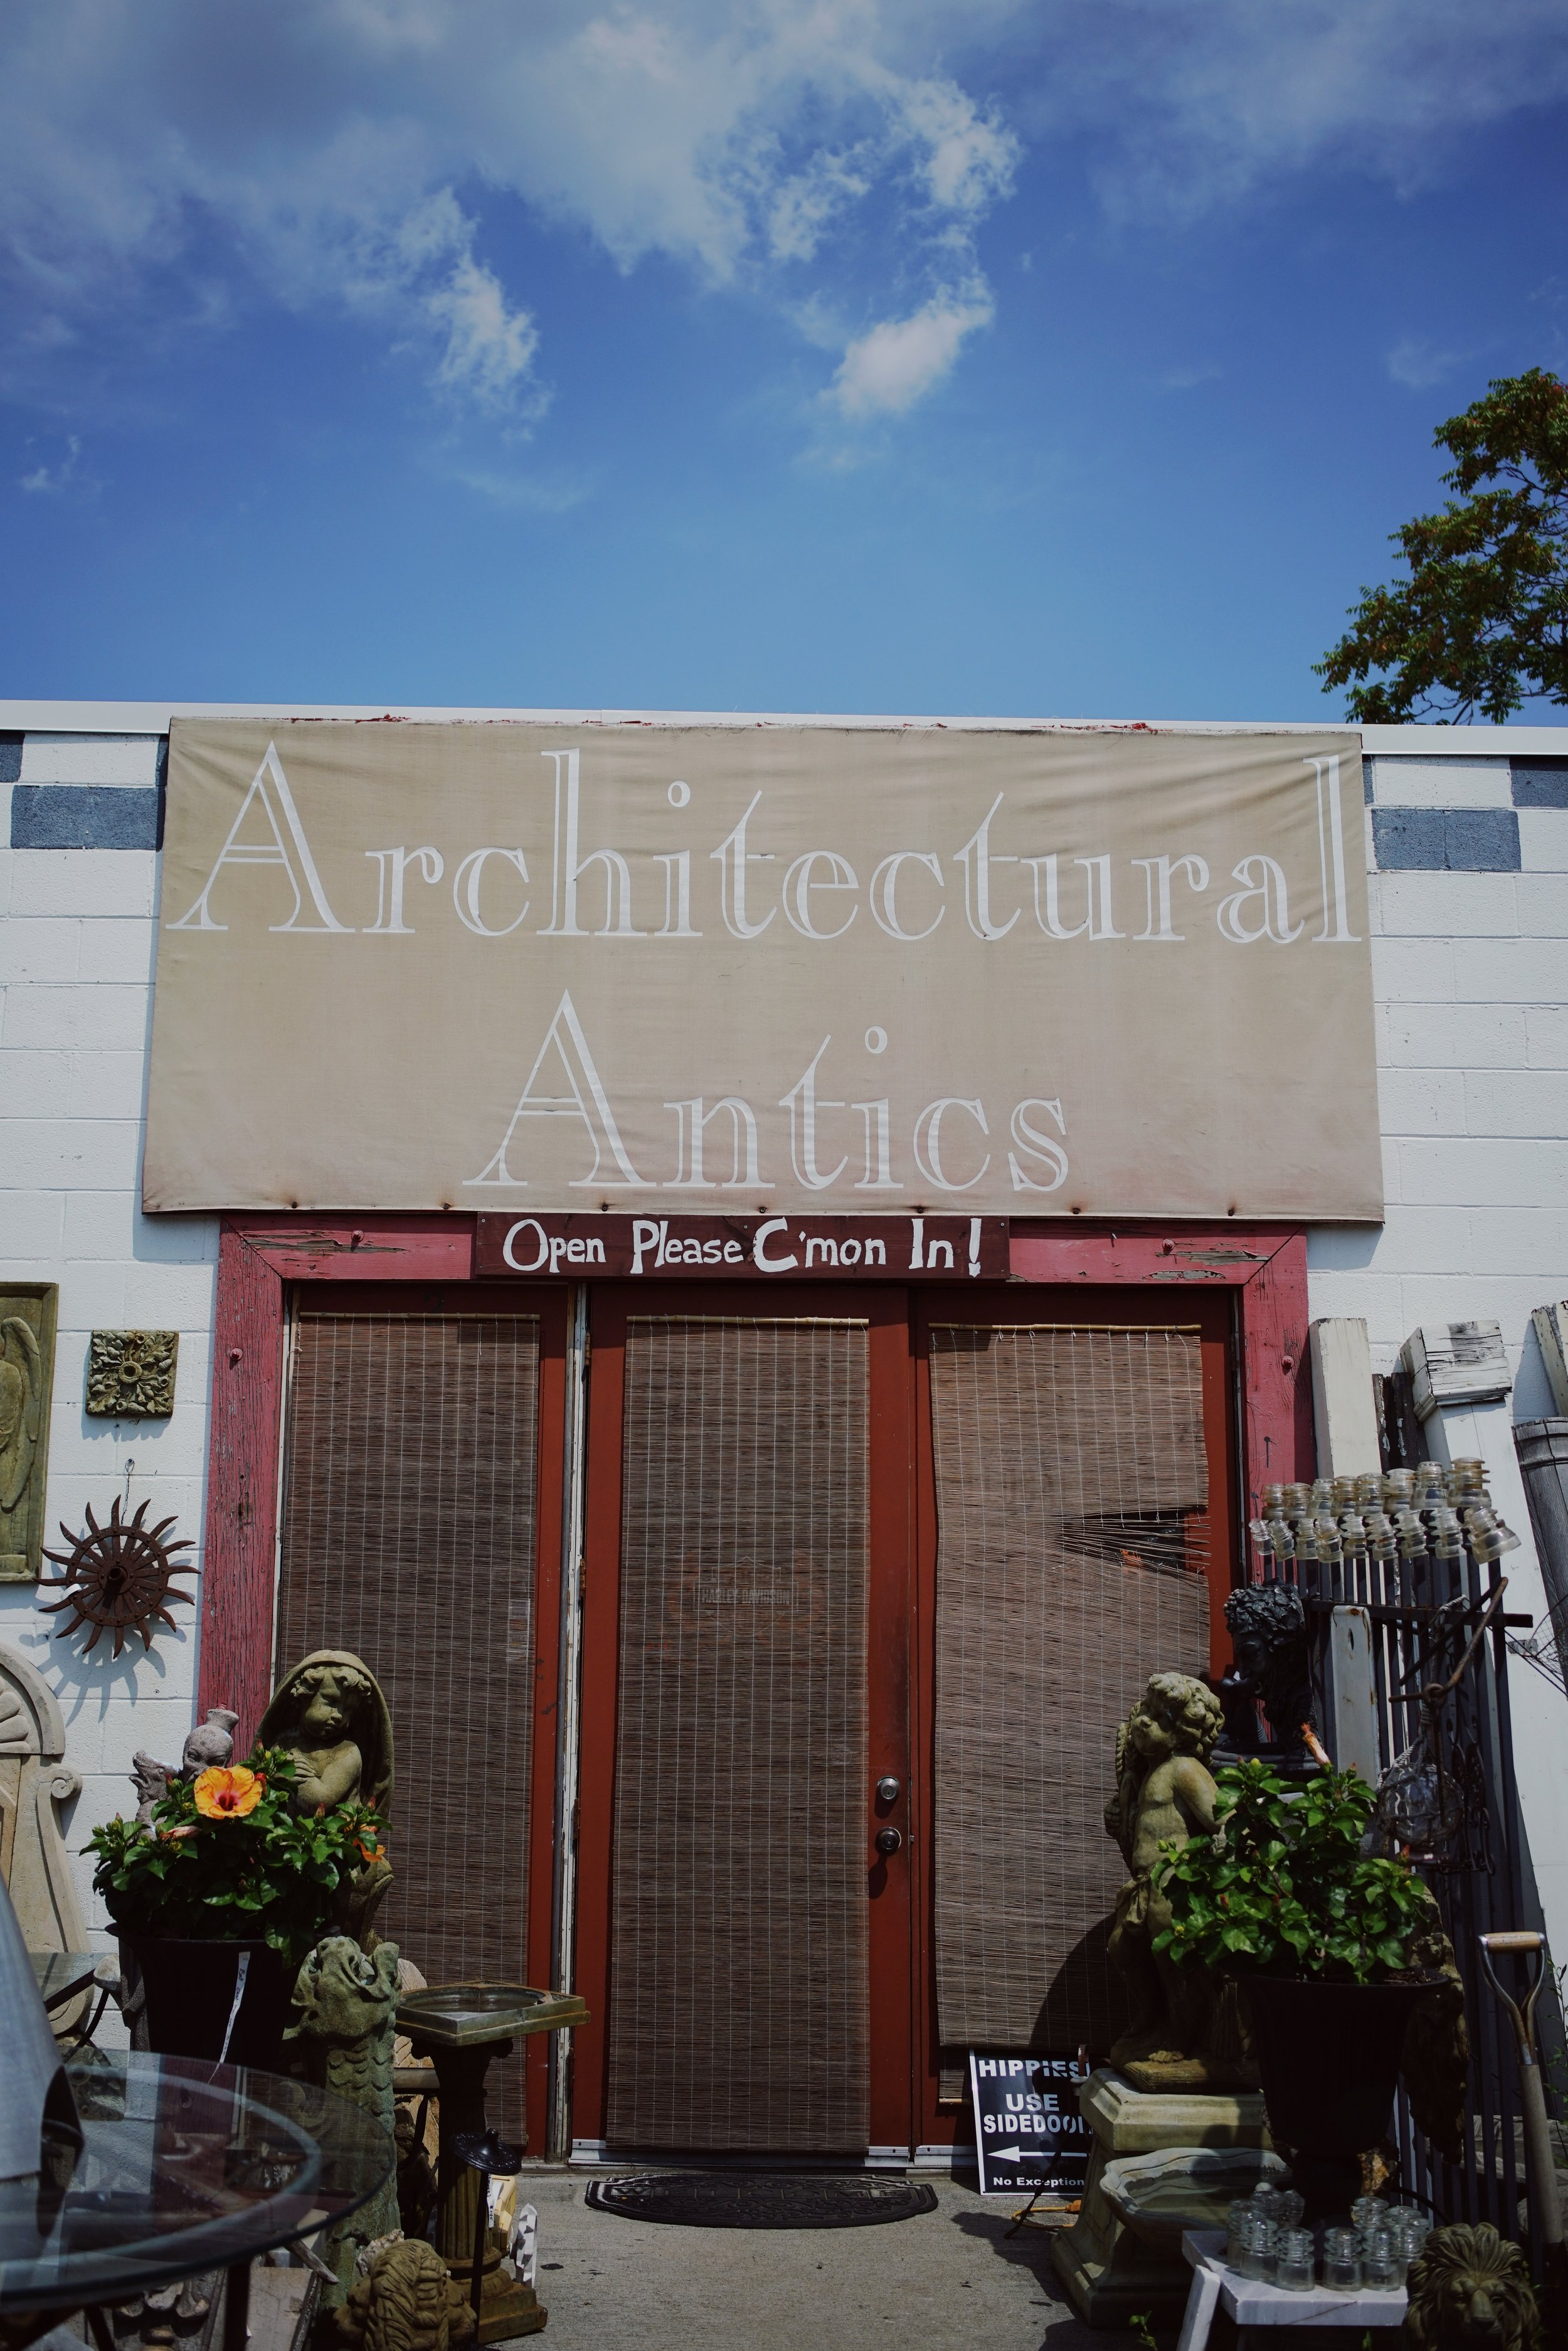 Architectural Antics is one of our favorite local destinations.